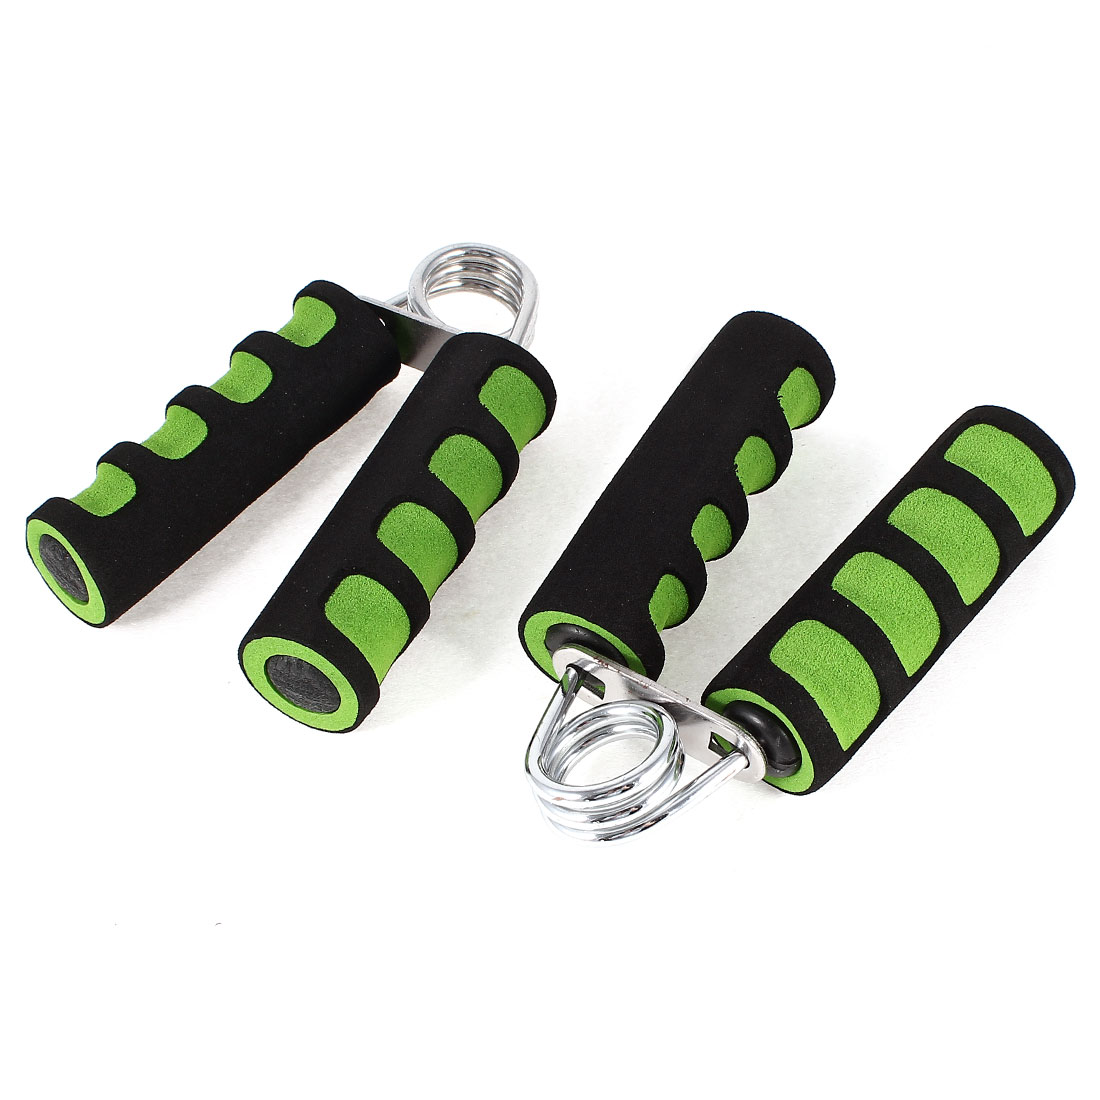 Fitness Exercise Hand Grippers Wrist Arm Strength Green Black 2pcs